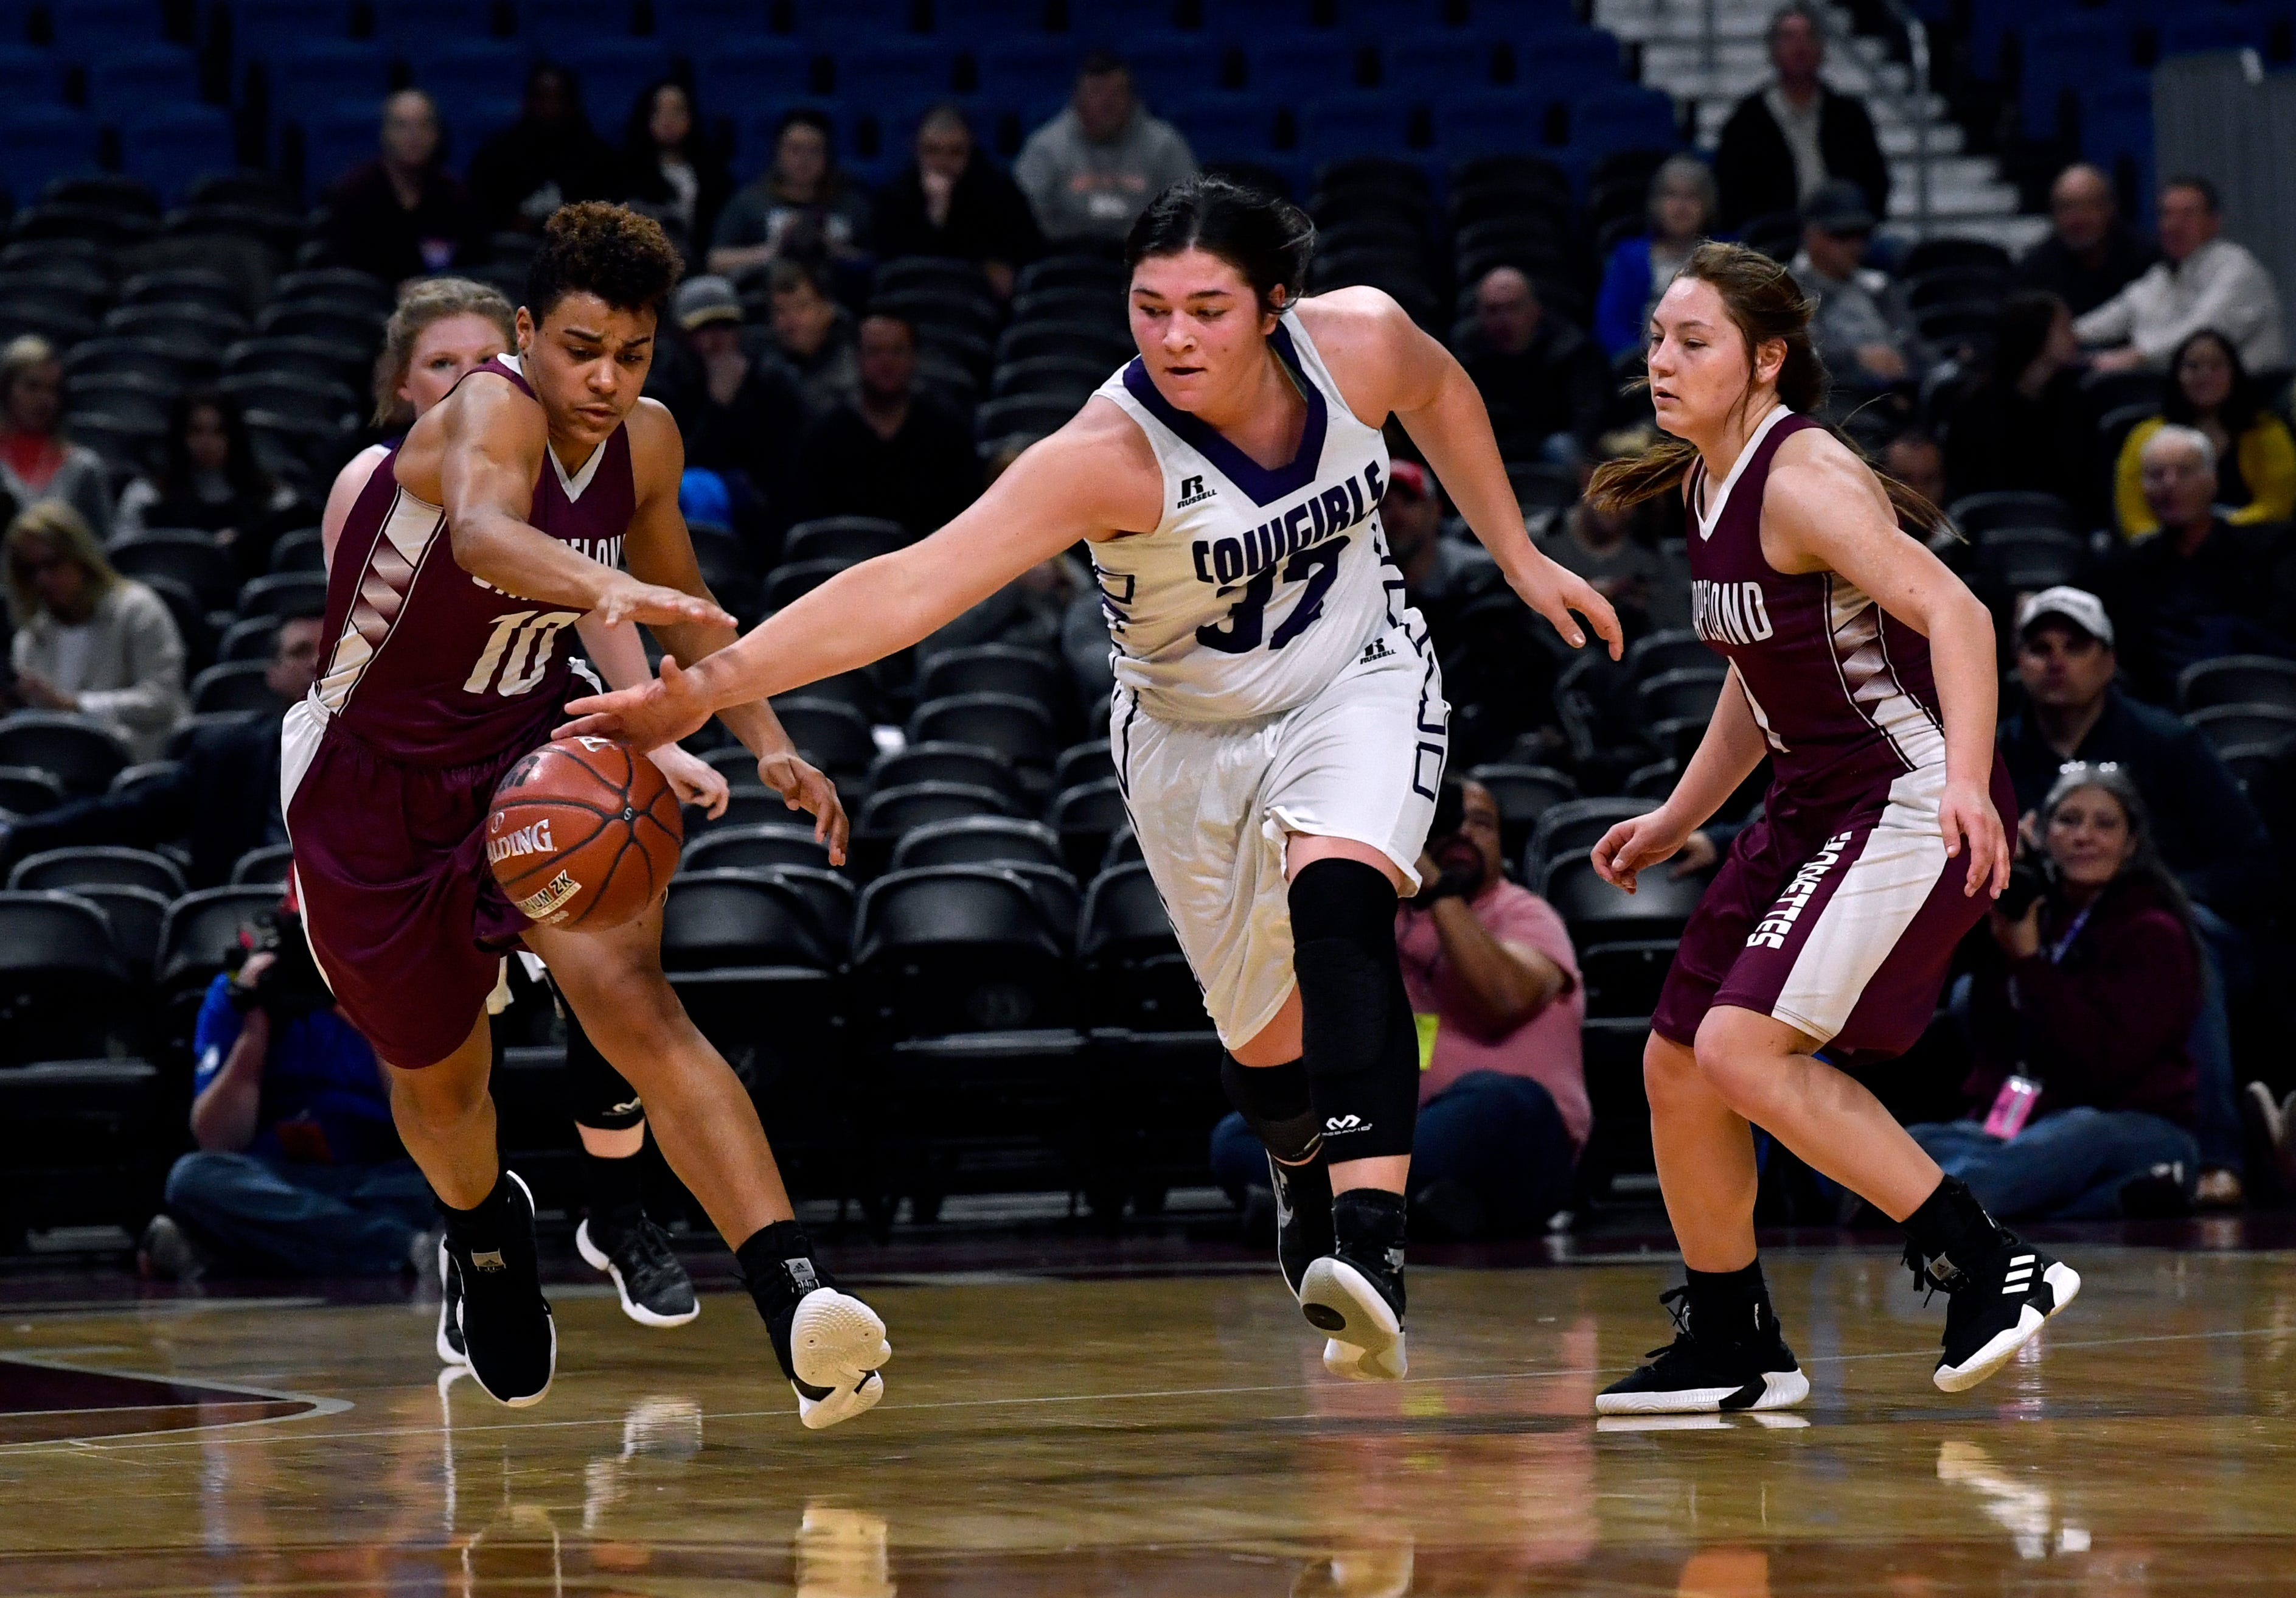 Cowgirls center Ruby Magnus tries to keep the ball away from Grapeland forward Teira Jones during Friday's UIL Class 2A girls state basketball semifinal at the Alamodome in San Antonio March 1, 2019.